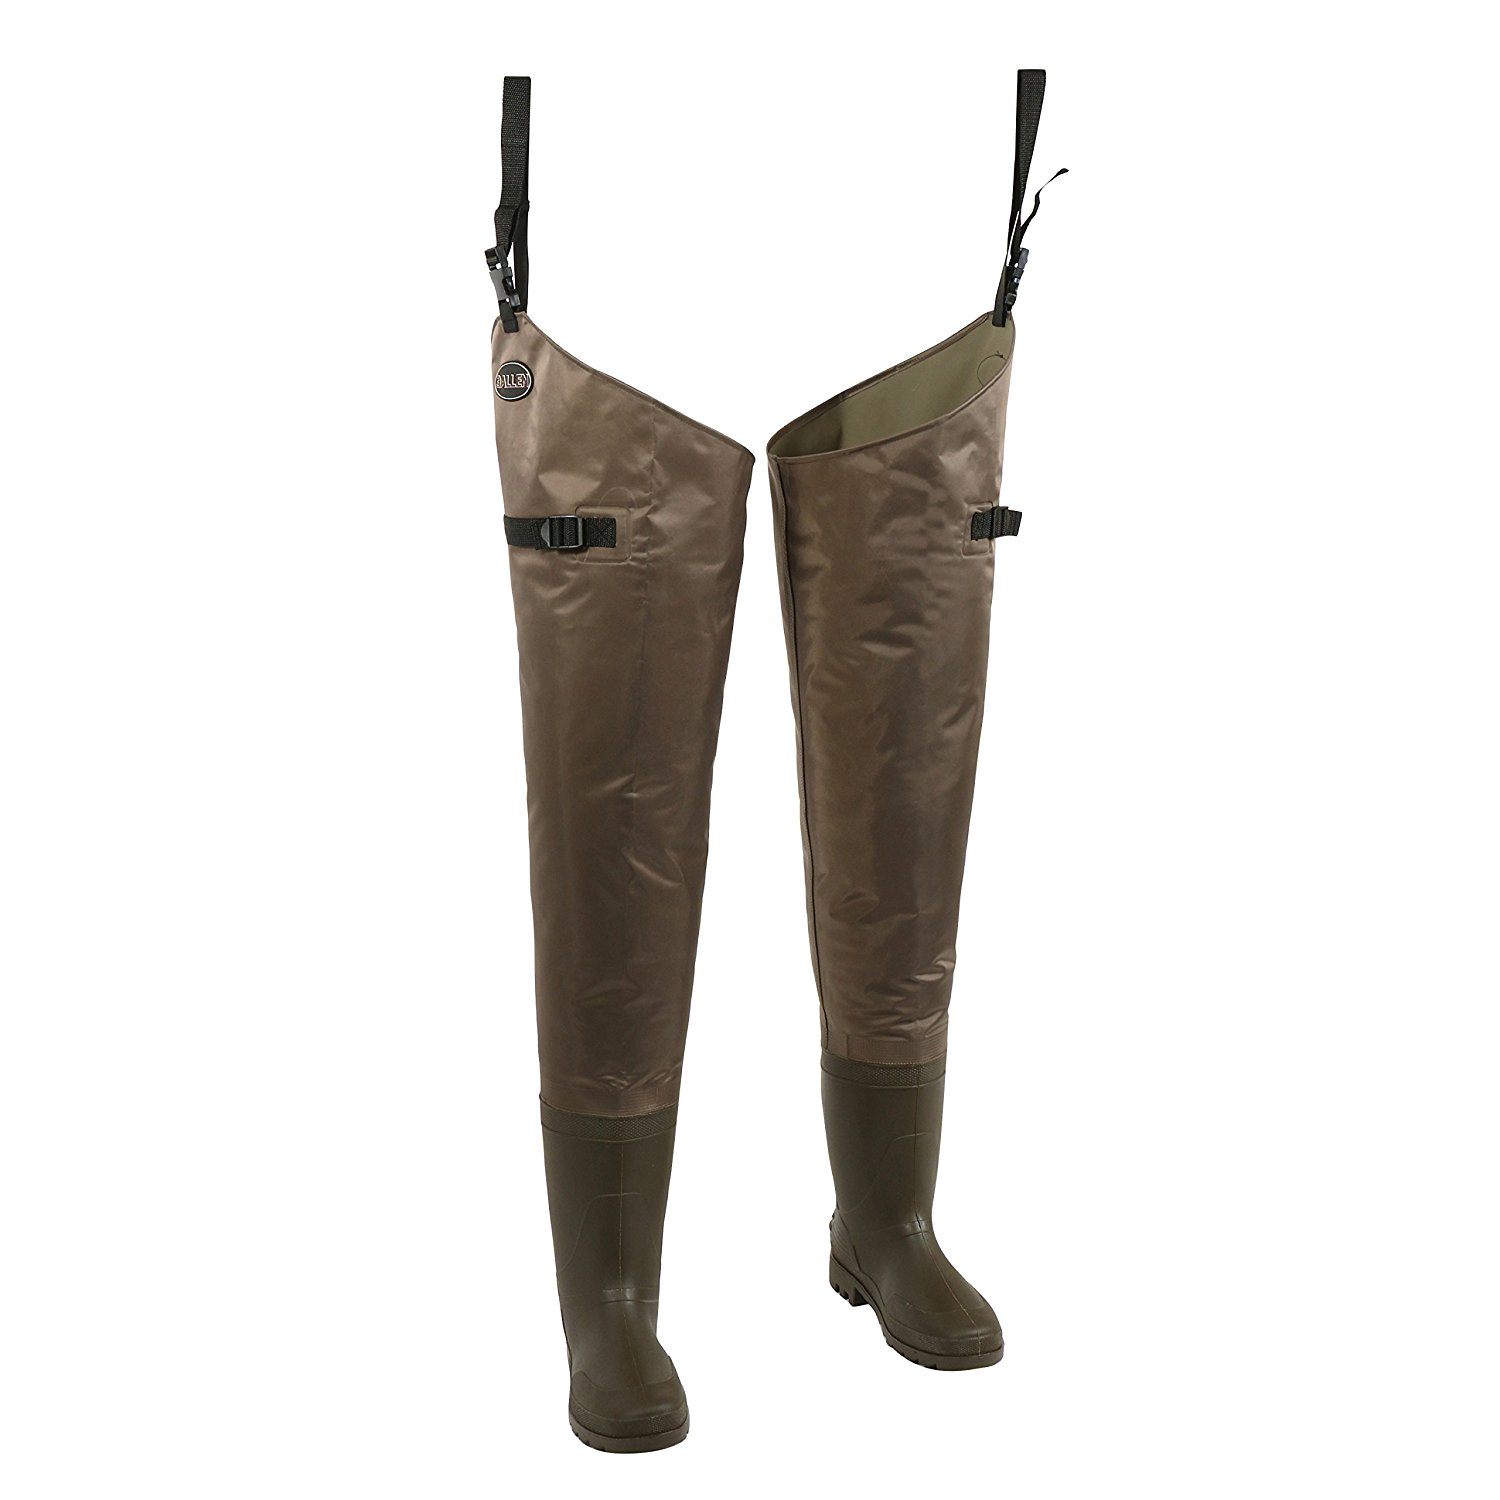 Allen Company Black River Hip Waders